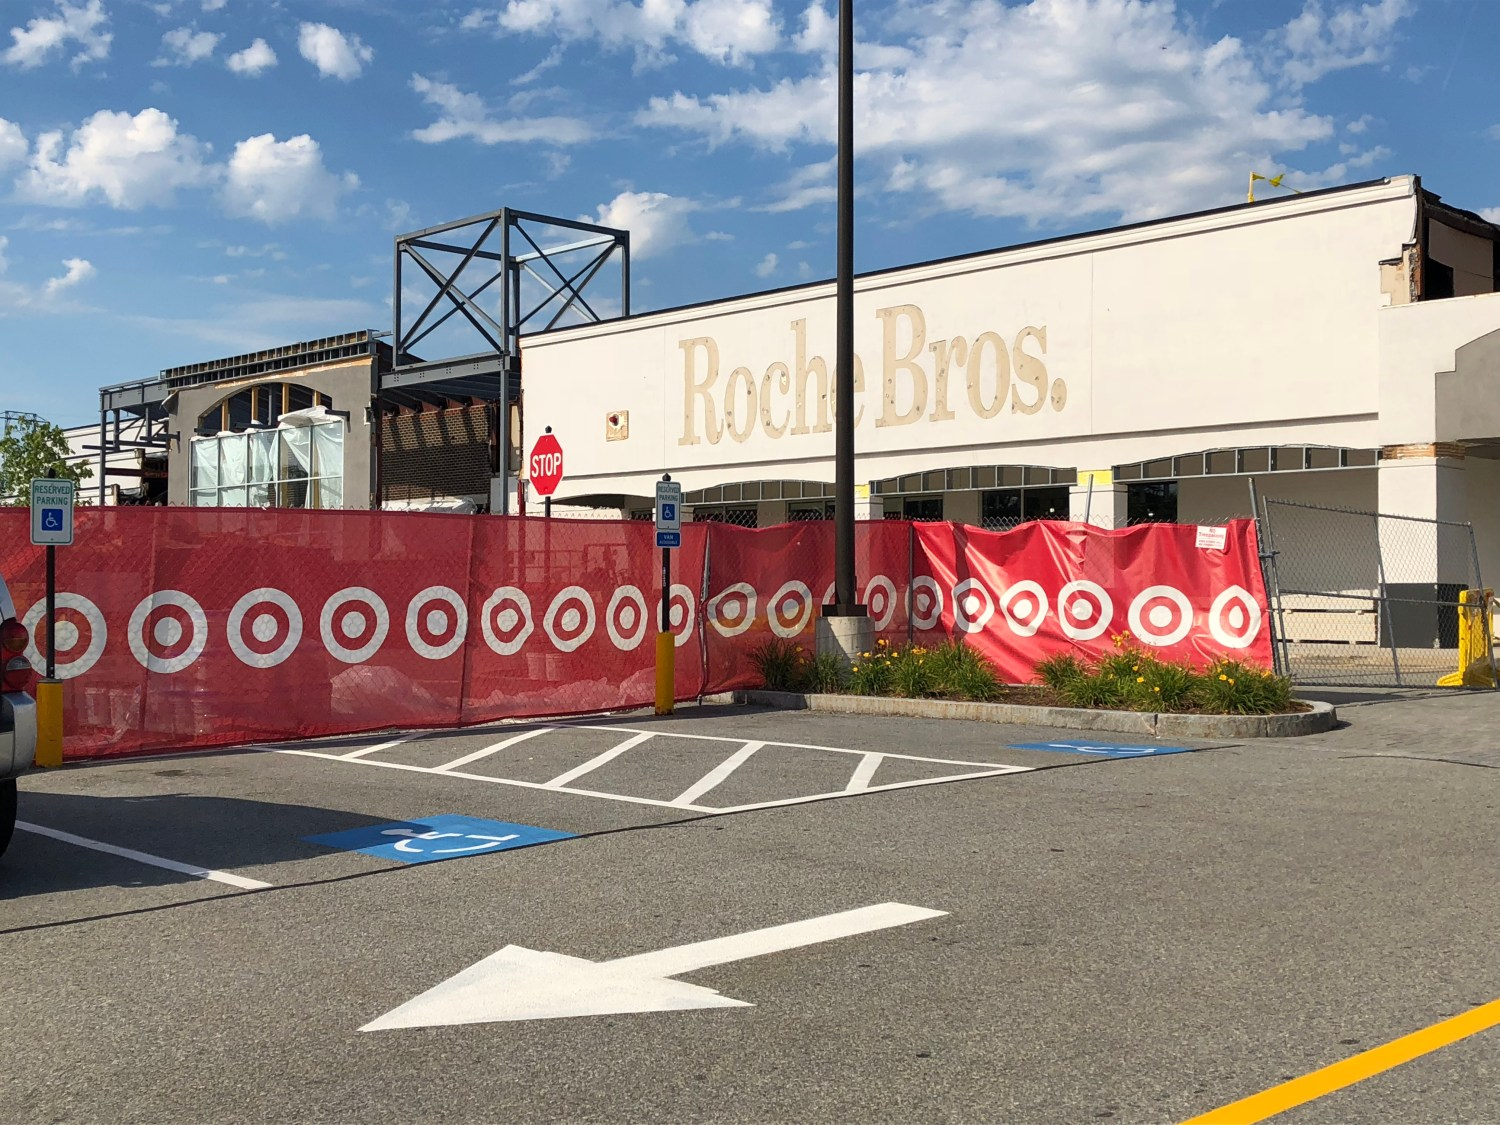 Roche Bros. location becoming Target, taken July 2018 Burlington MA